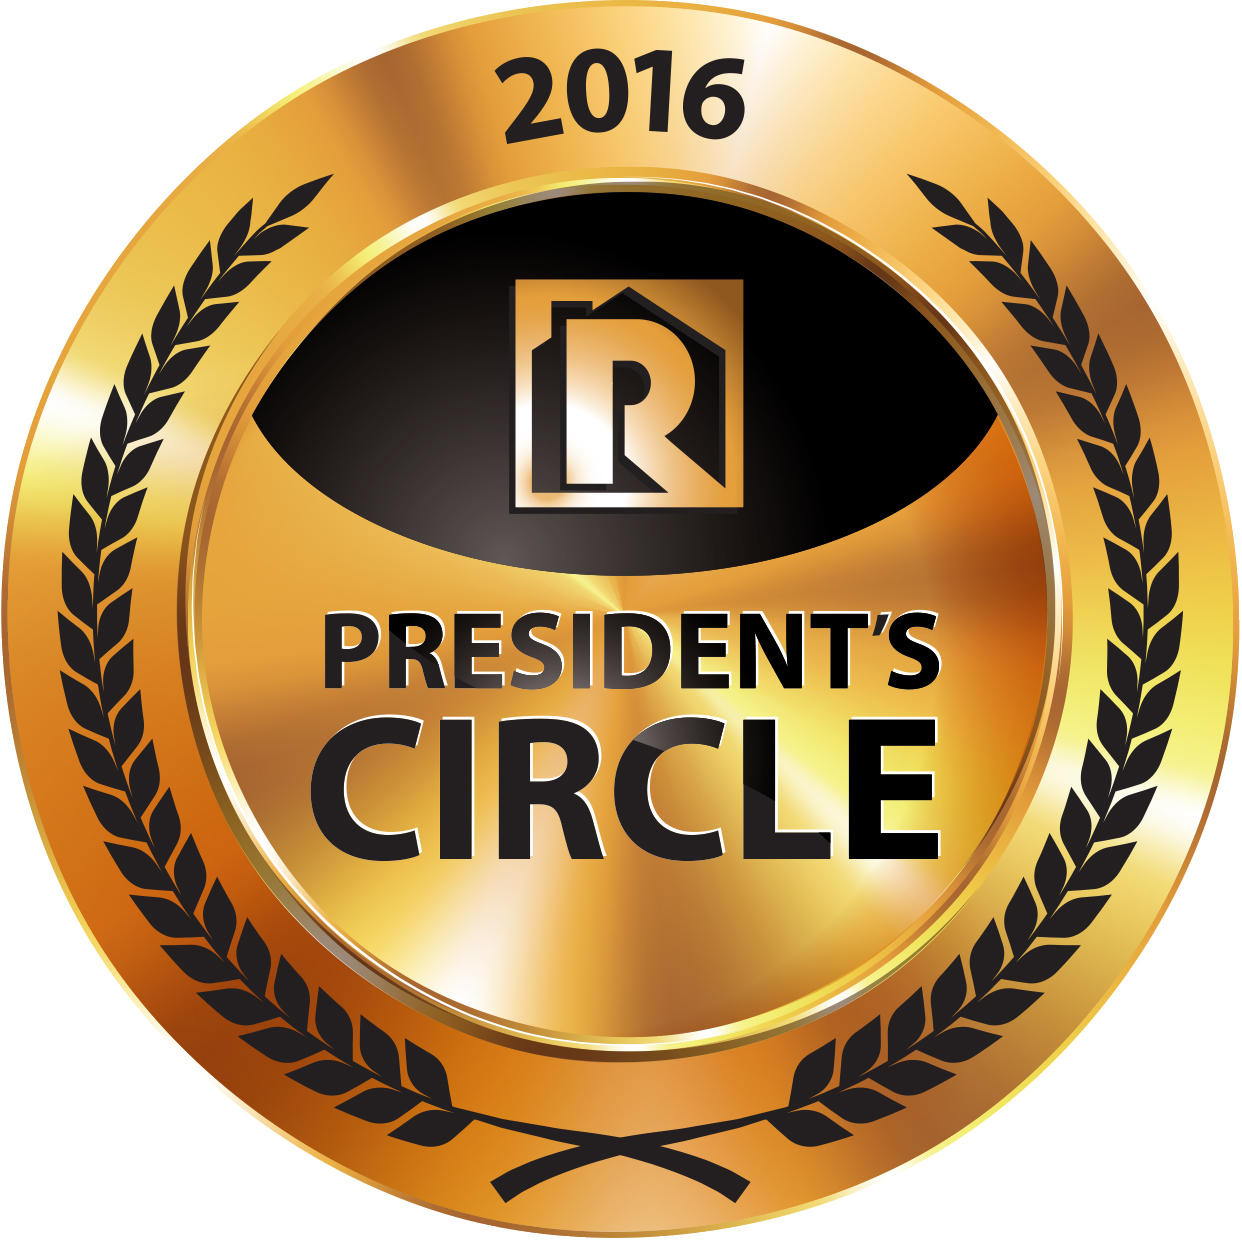 Gold S Real Property Management Gold Receives Presidents Circle Gold